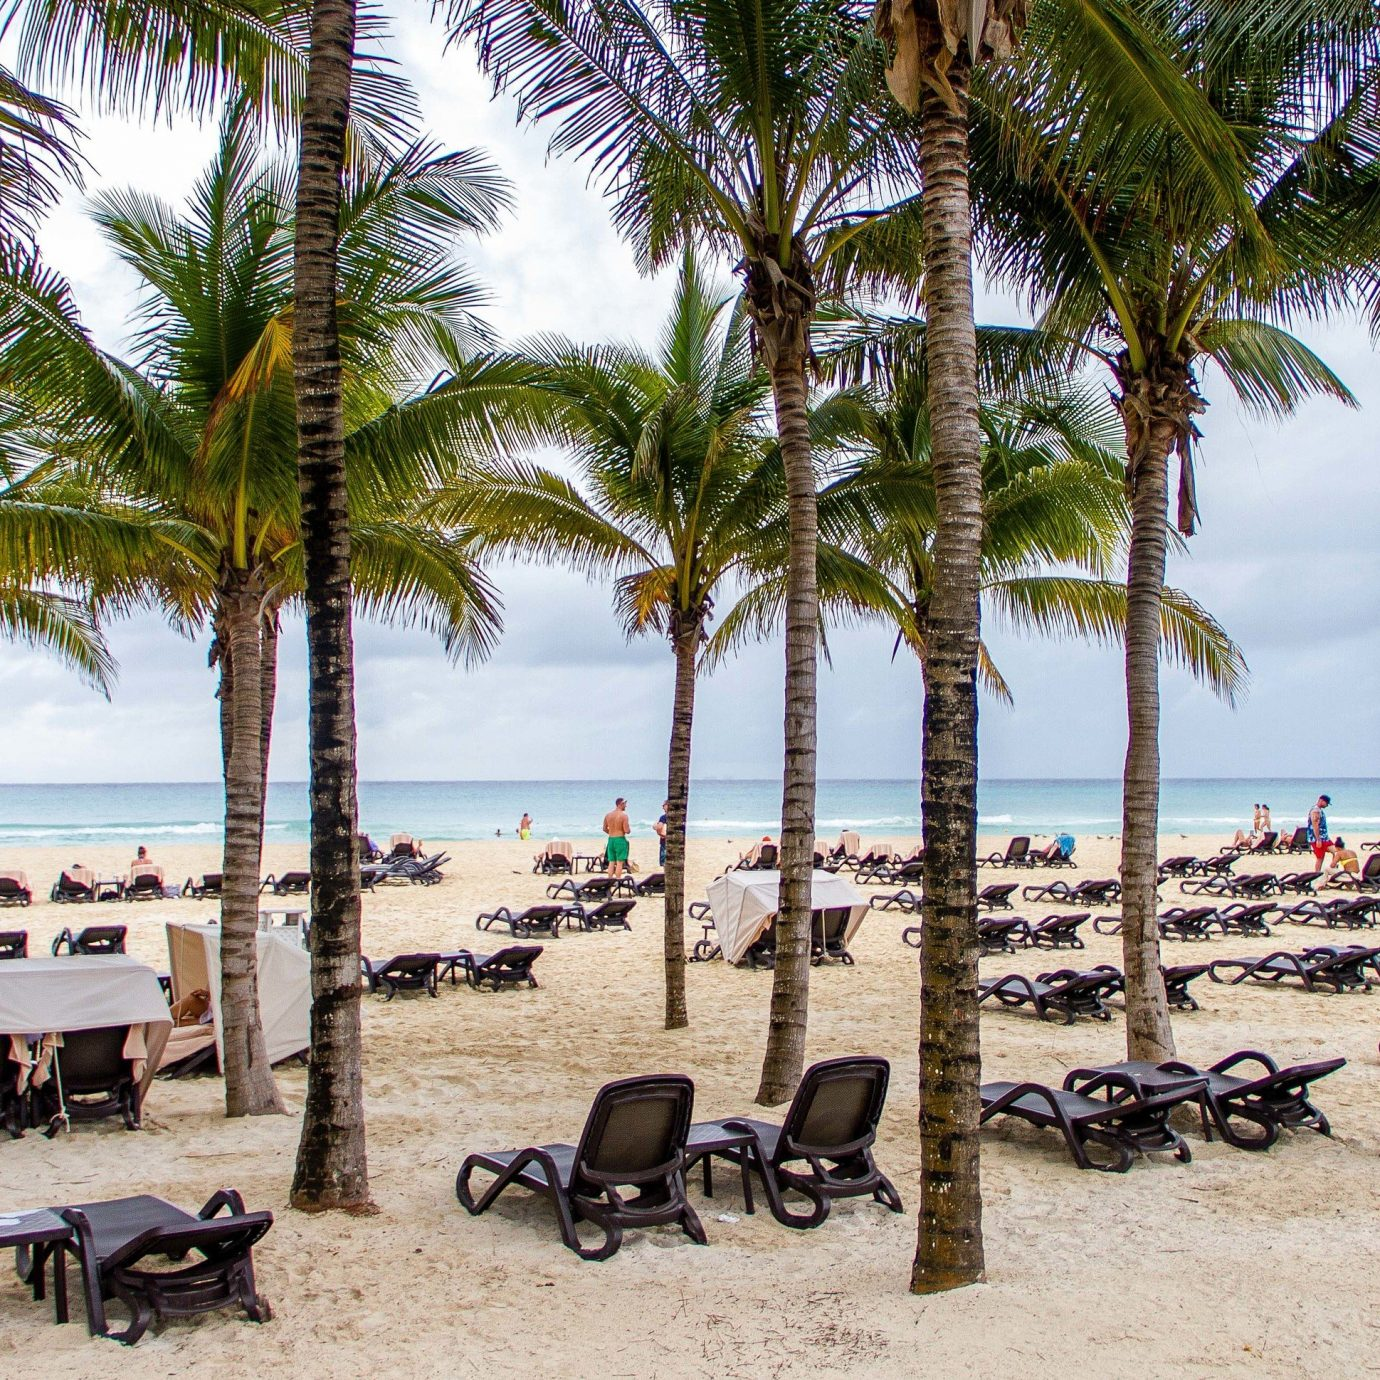 All-inclusive All-Inclusive Resorts Mexico Riviera Maya, Mexico Beach arecales palm tree tree Resort tropics shore plant caribbean Sea sky sand coconut